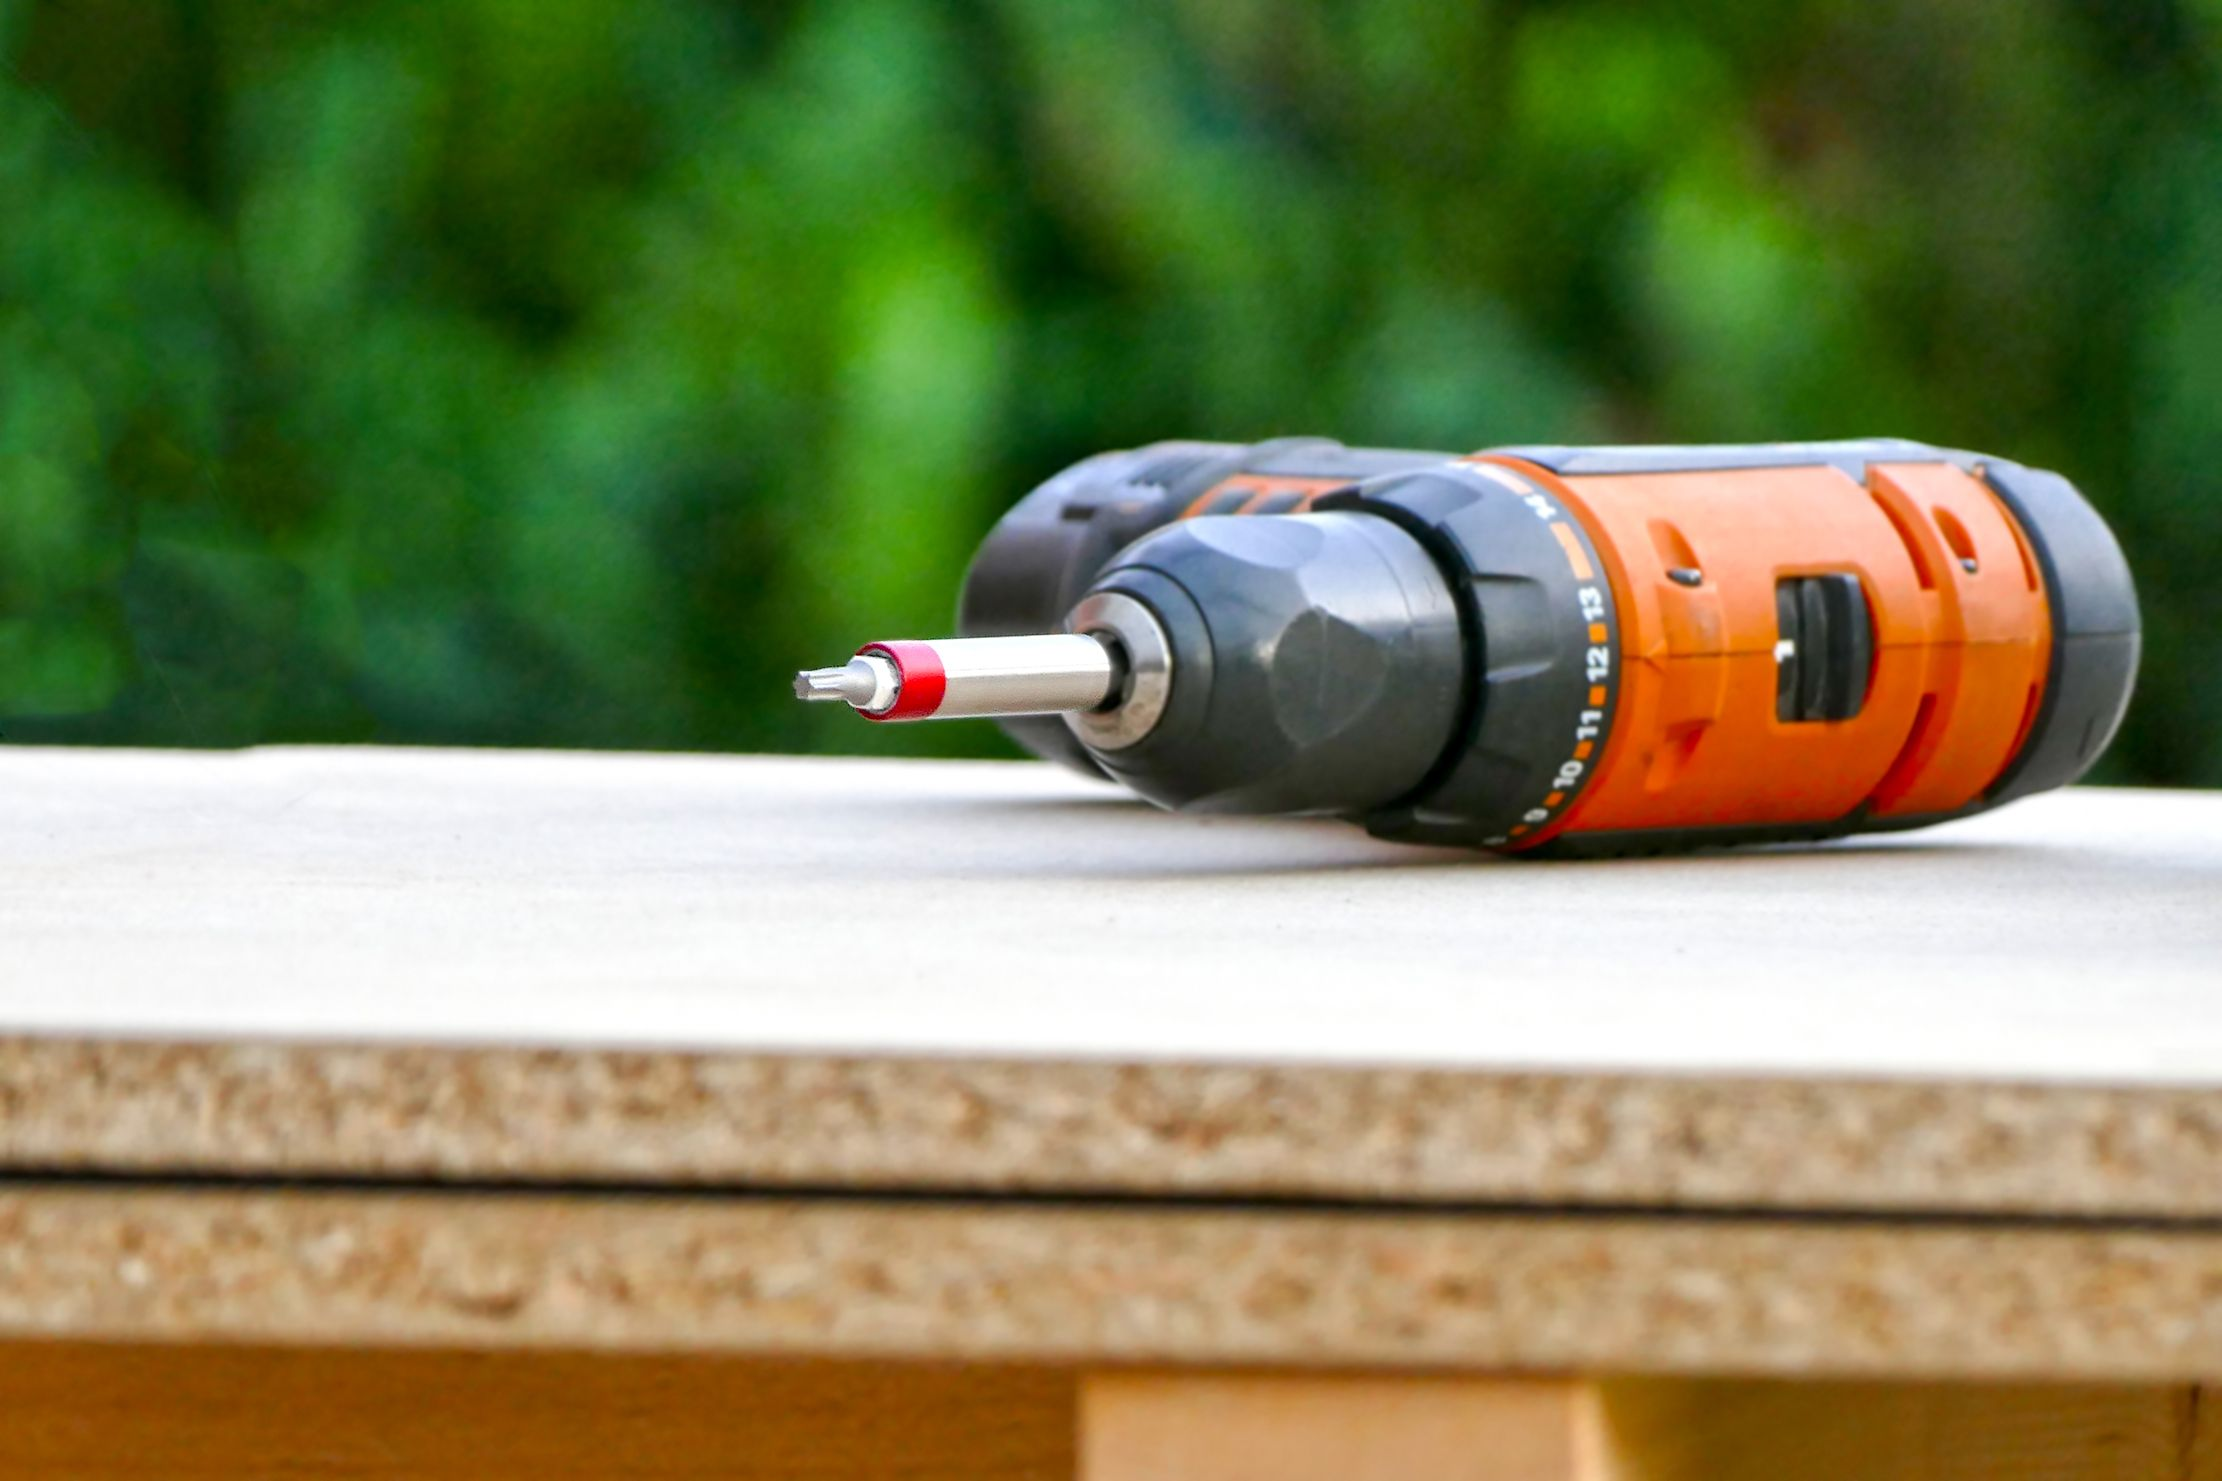 How To Jumpstart A Battery Jumpstart A Power Tool